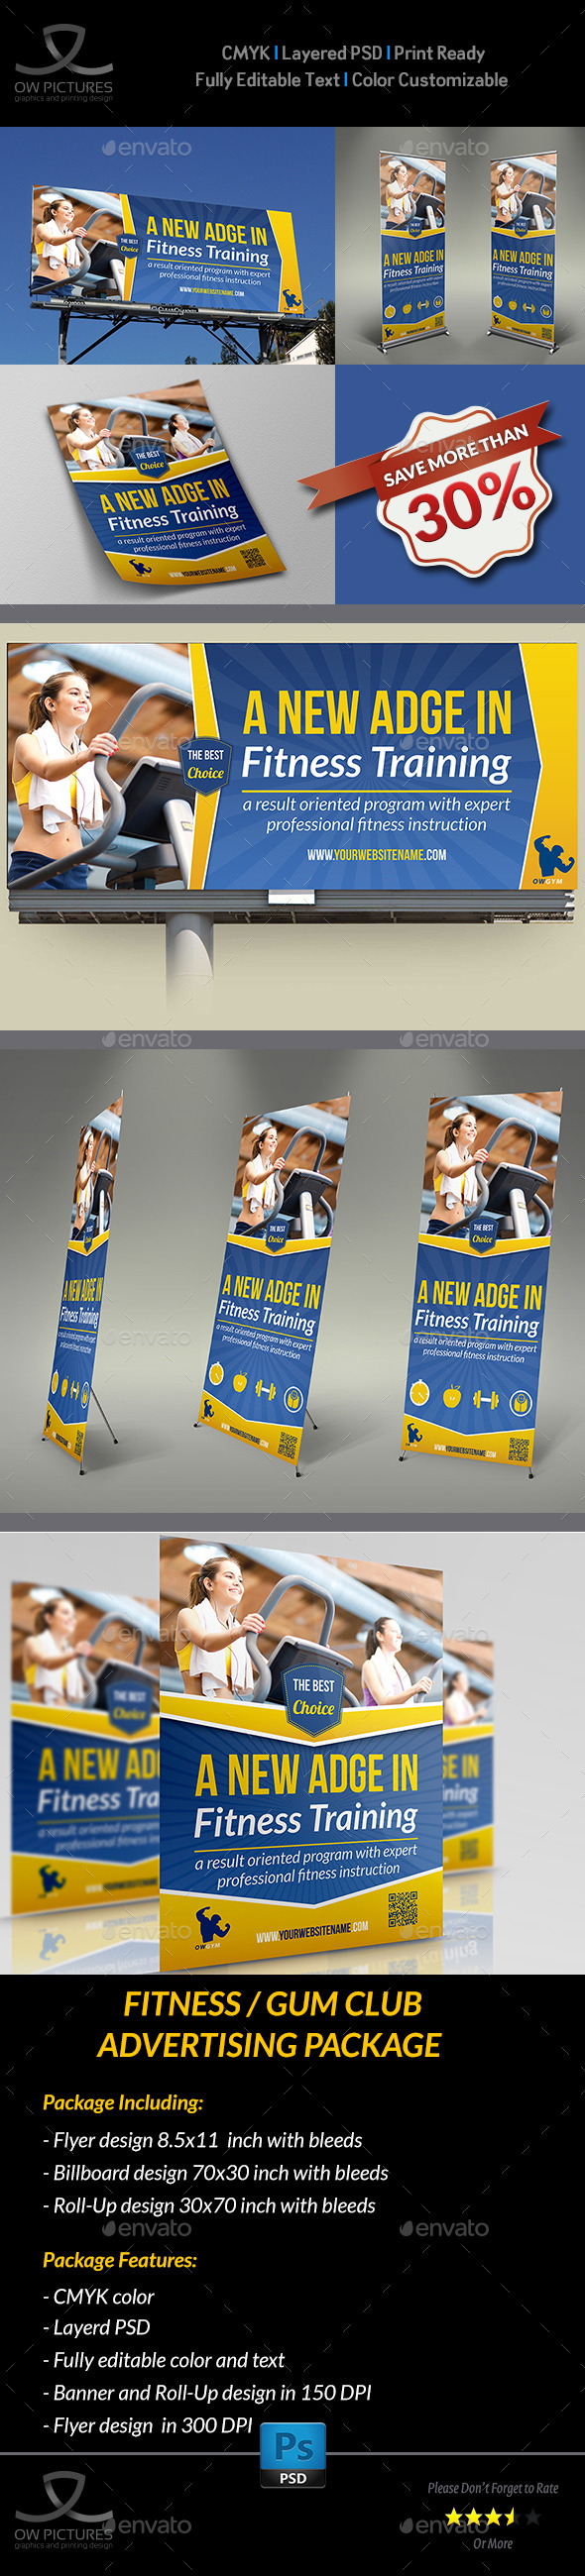 GraphicRiver Fitness GYM Advertising Bundle 9450727